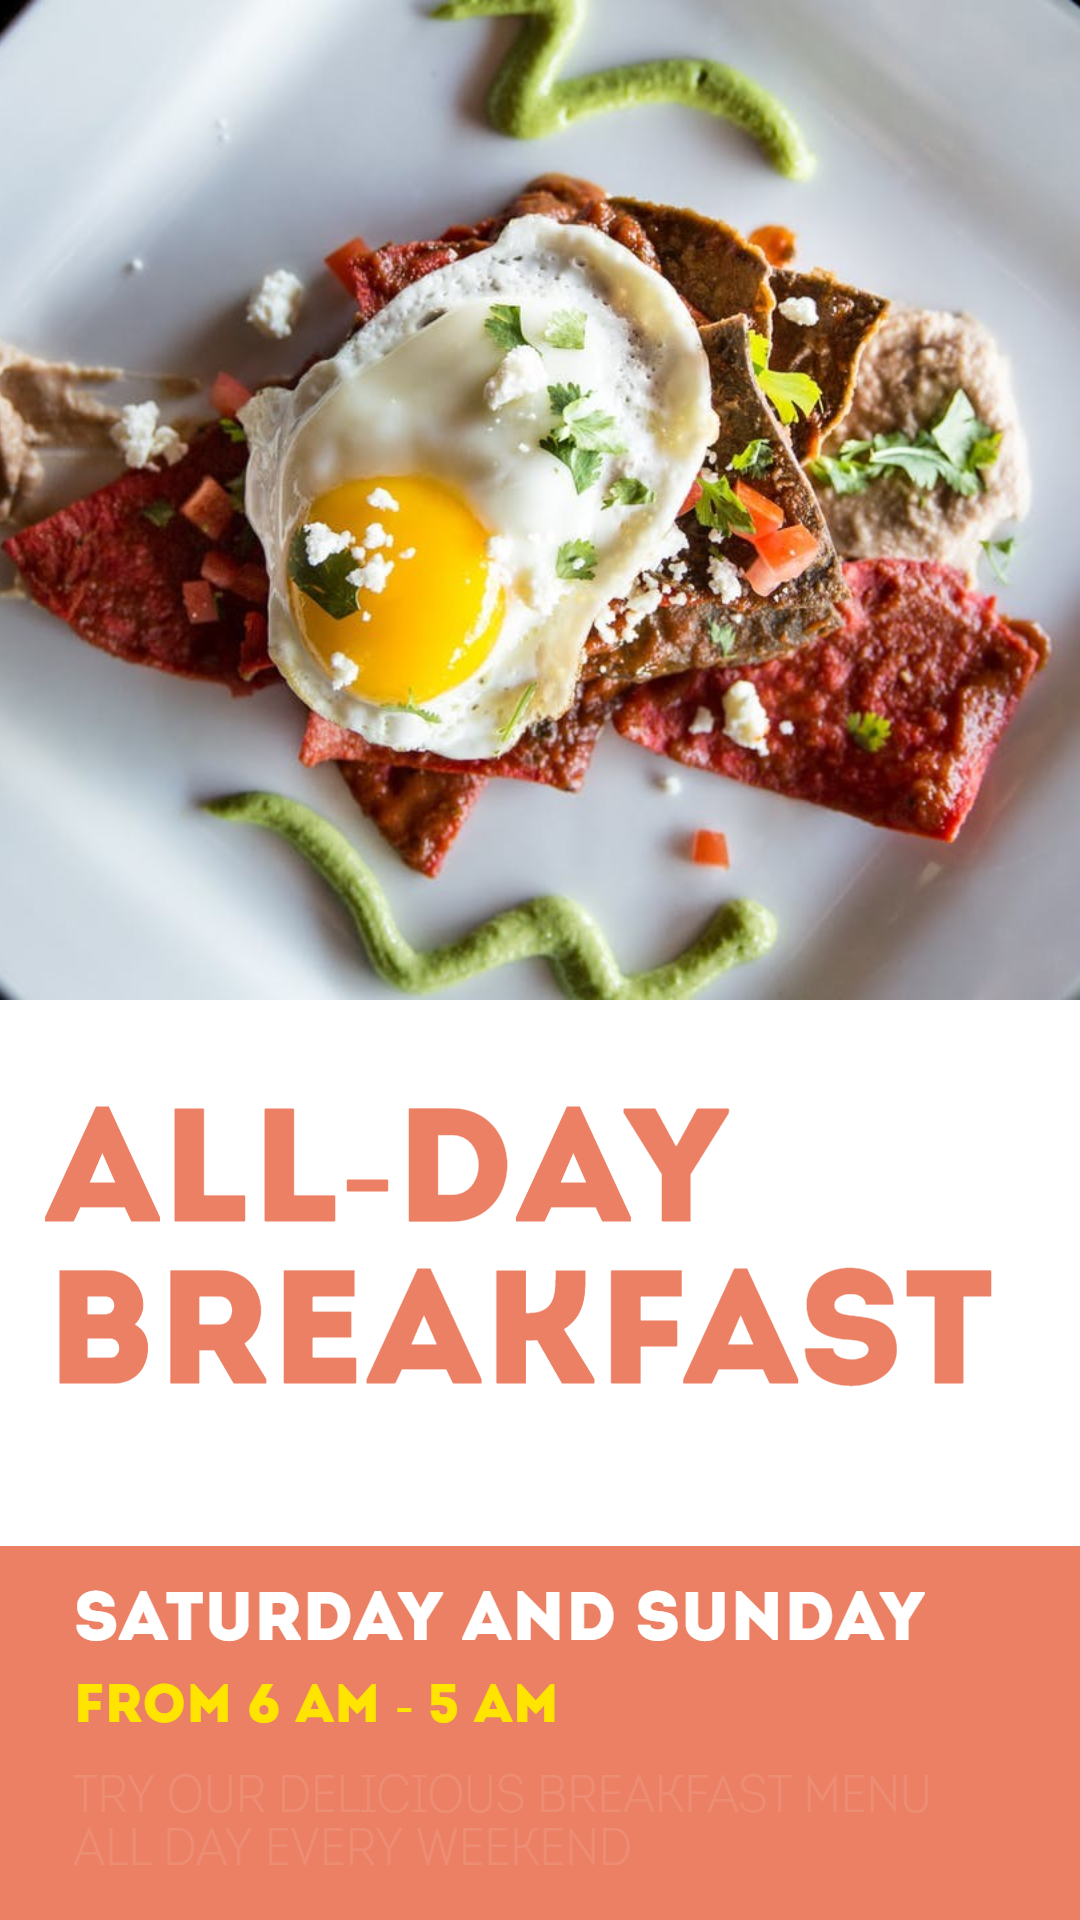 All day breakfast #business Animation  Template